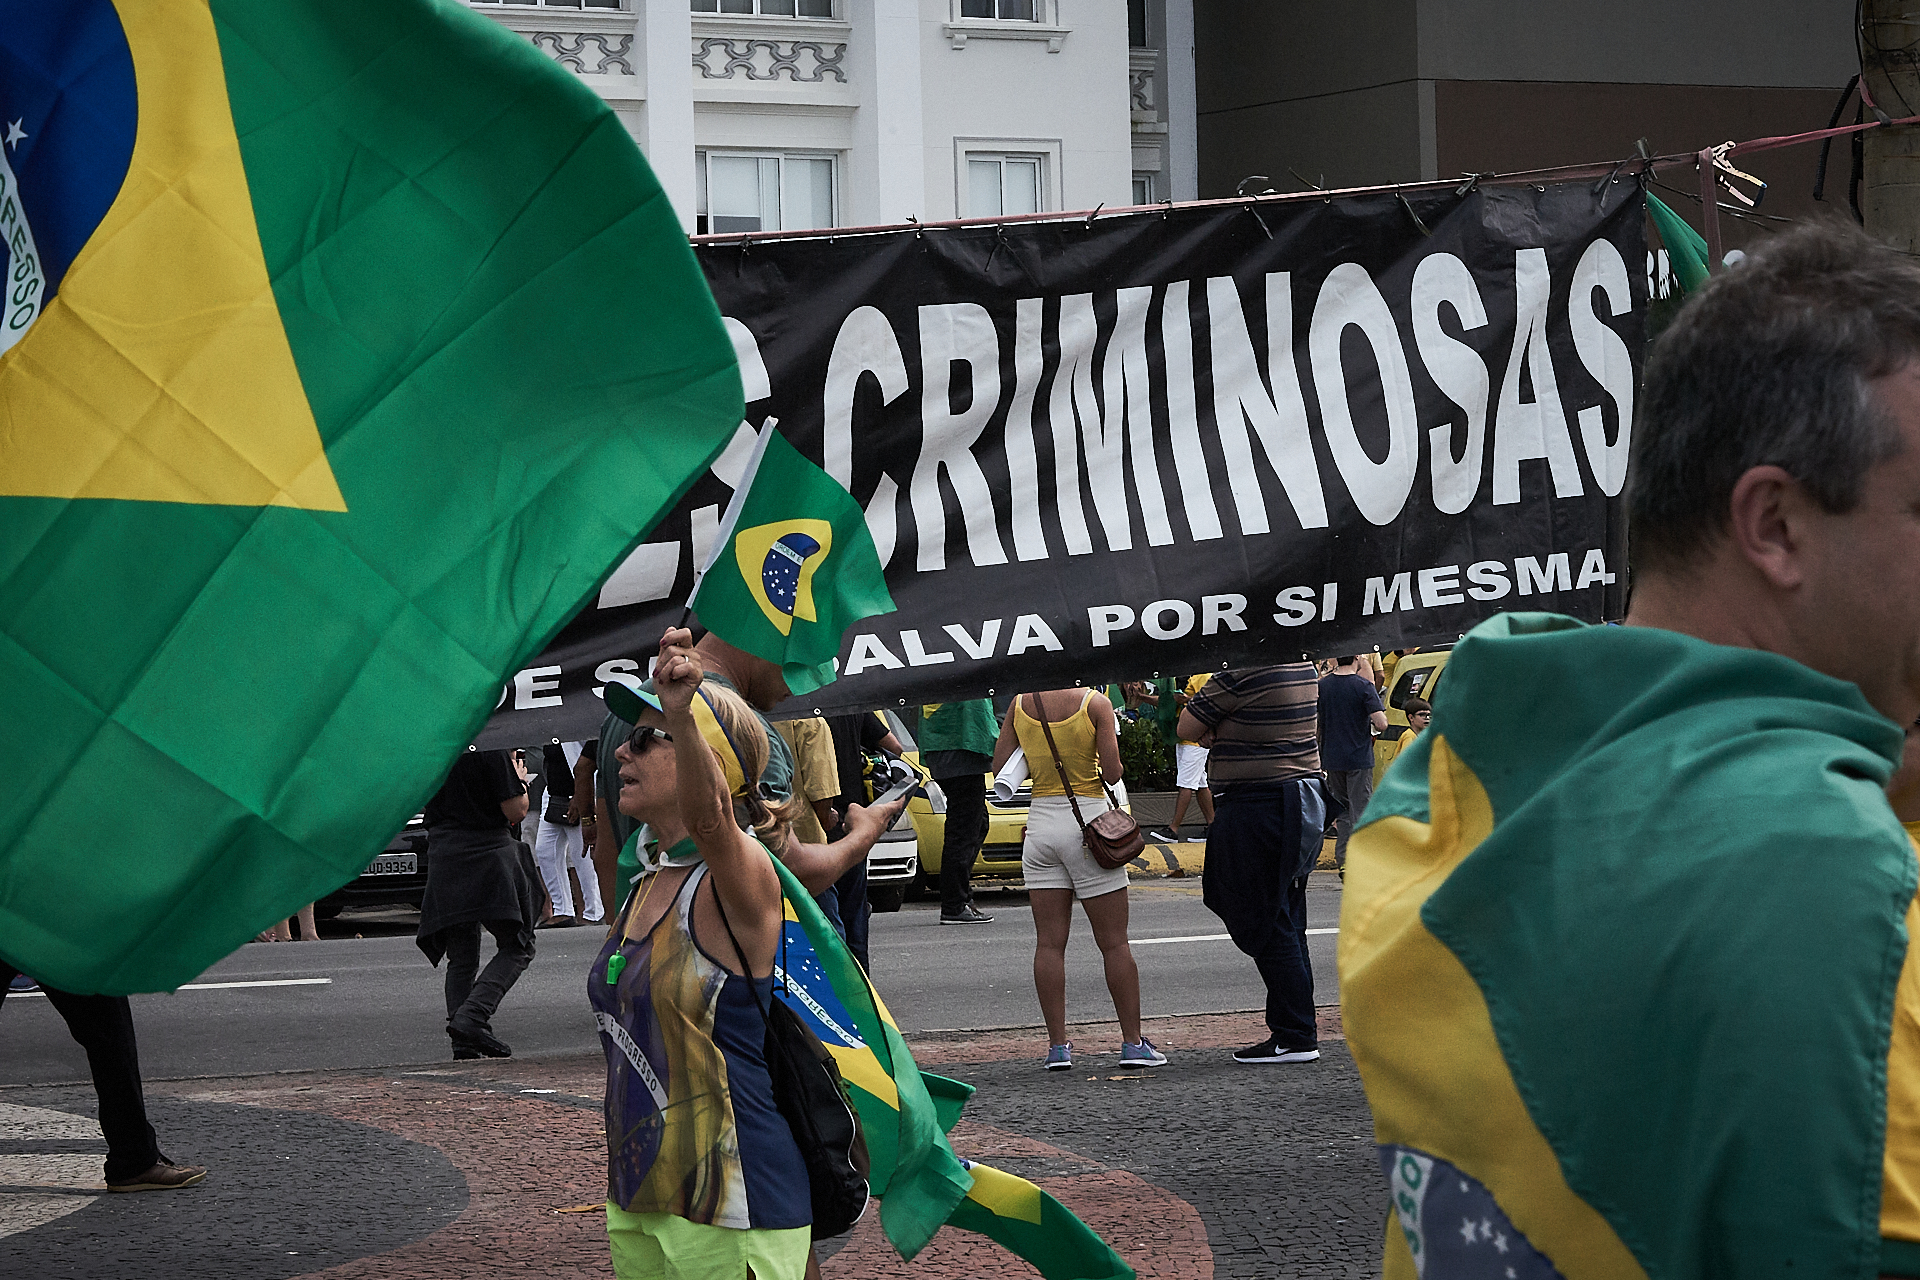 Pro-Bolsonaro supporters wave flags and show banners during a demonstration (Photo: C.H. Gardiner)